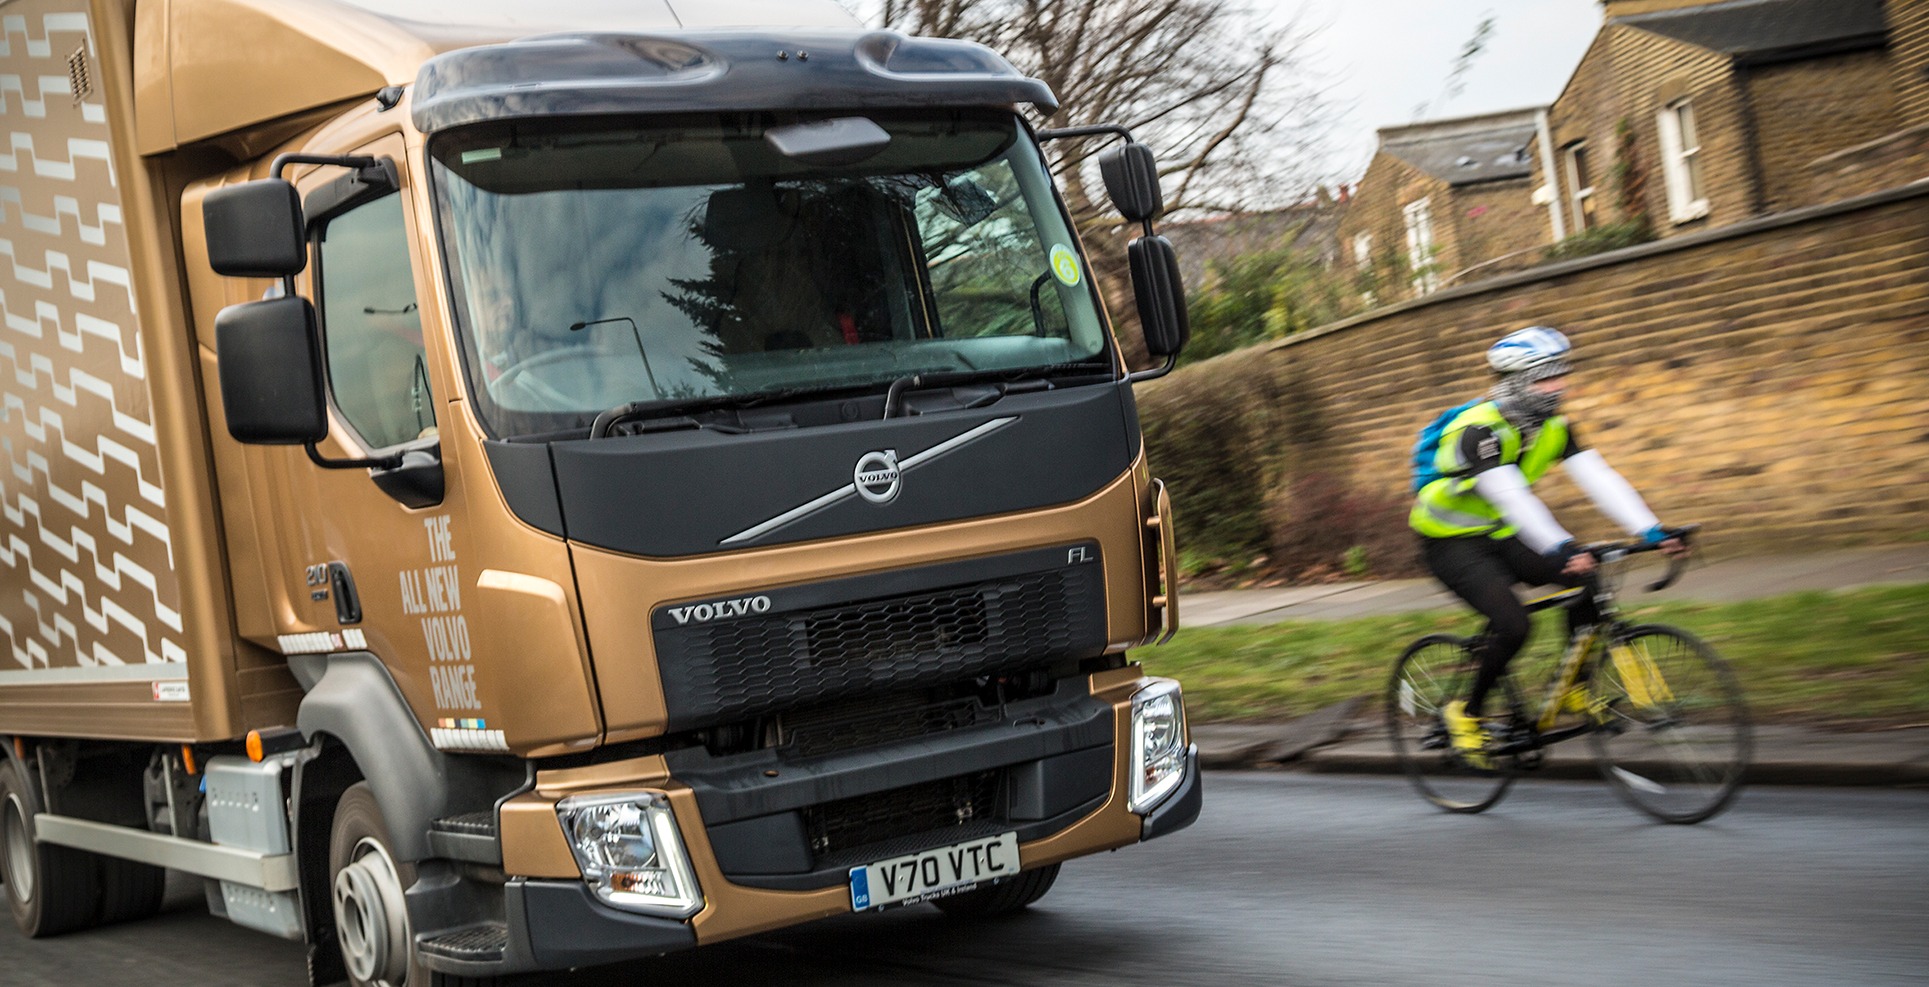 Volvo HGV truck cyclist safety DVS